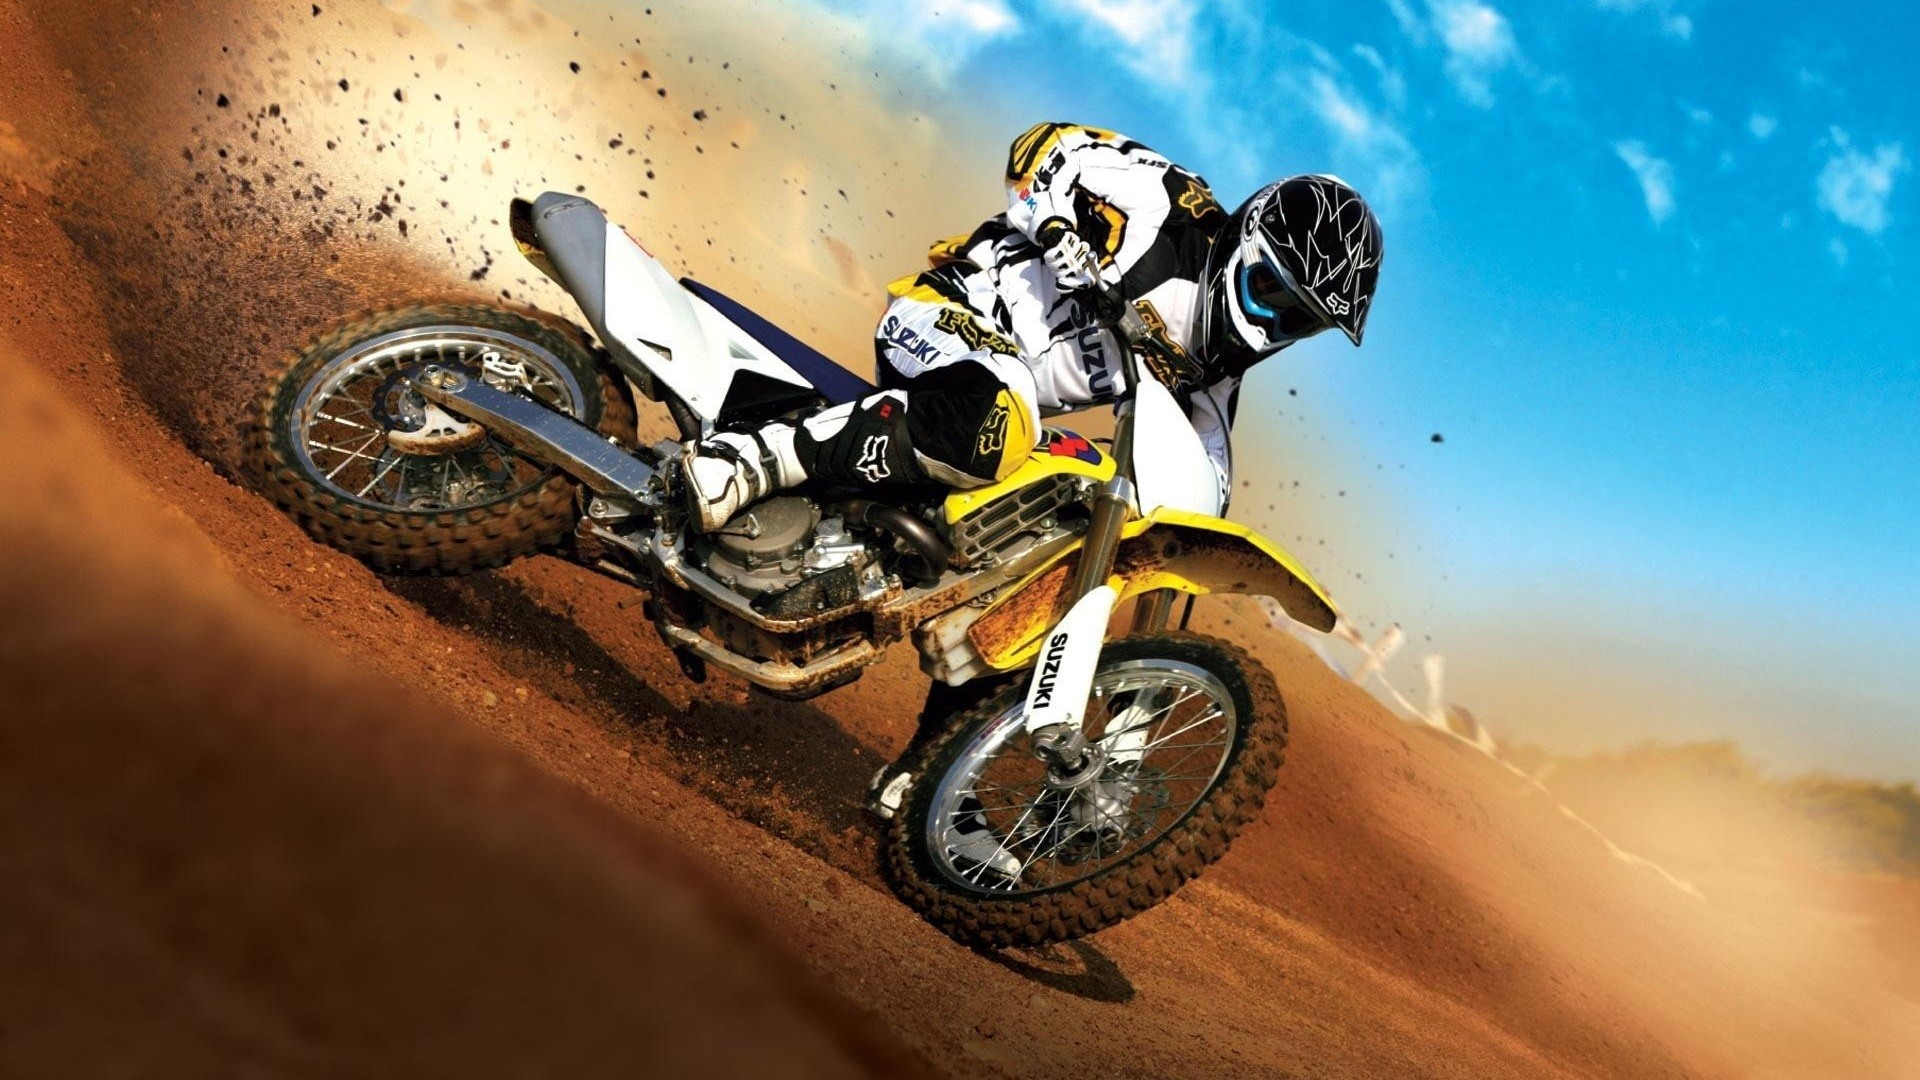 1920x1080 Super Dirt Bike Desktop Pc And Mac Wallpaper